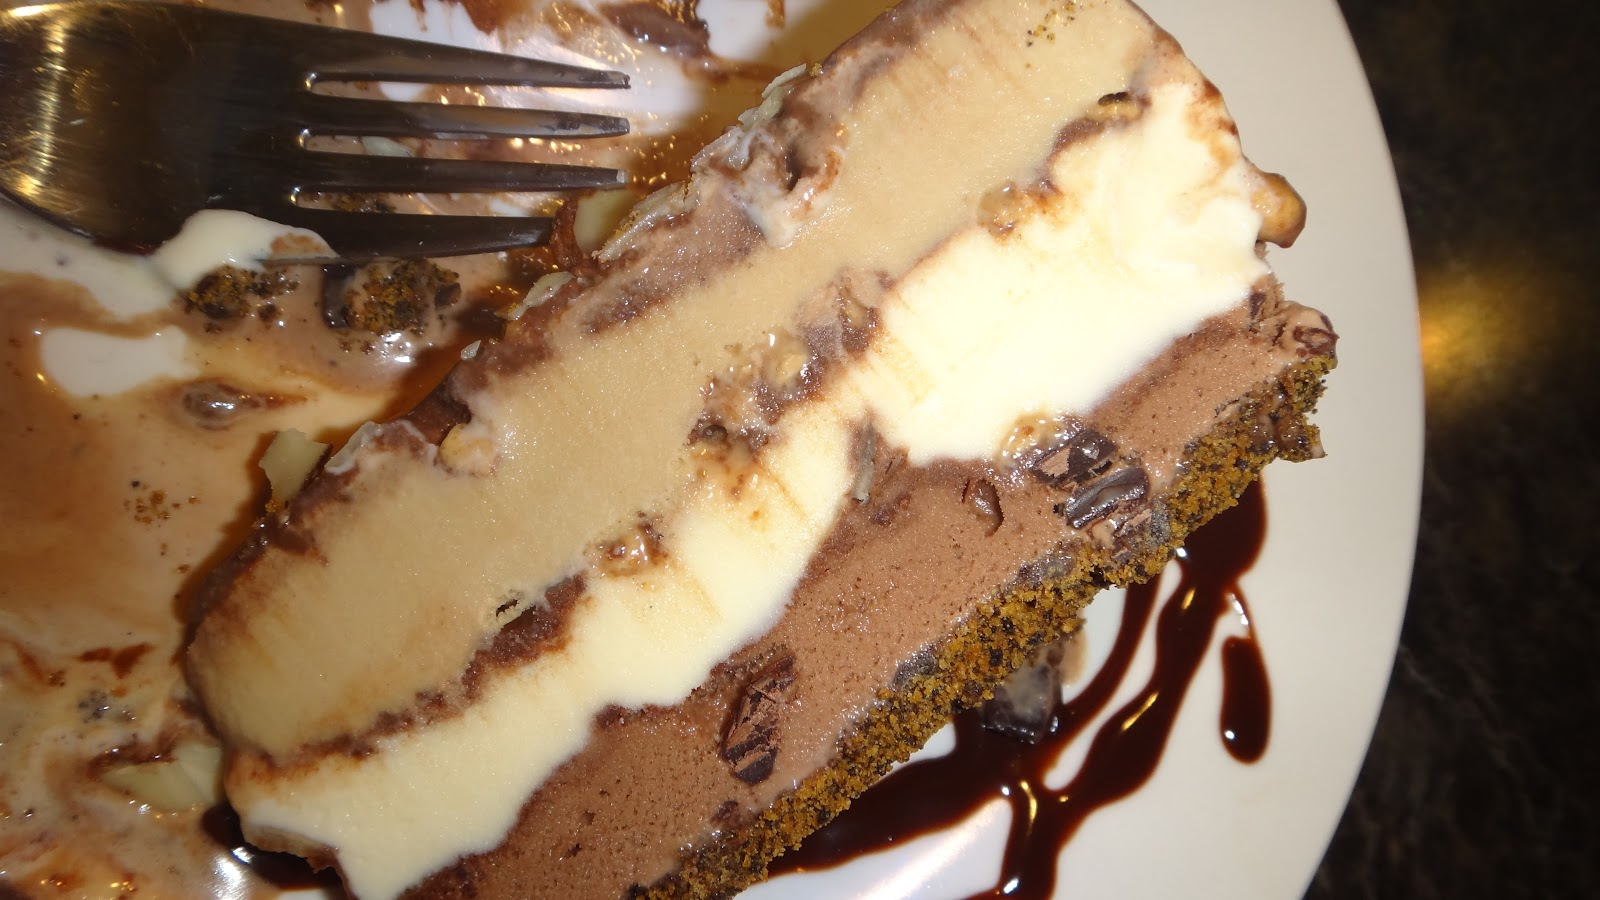 Recipe for mocha ice cream cake